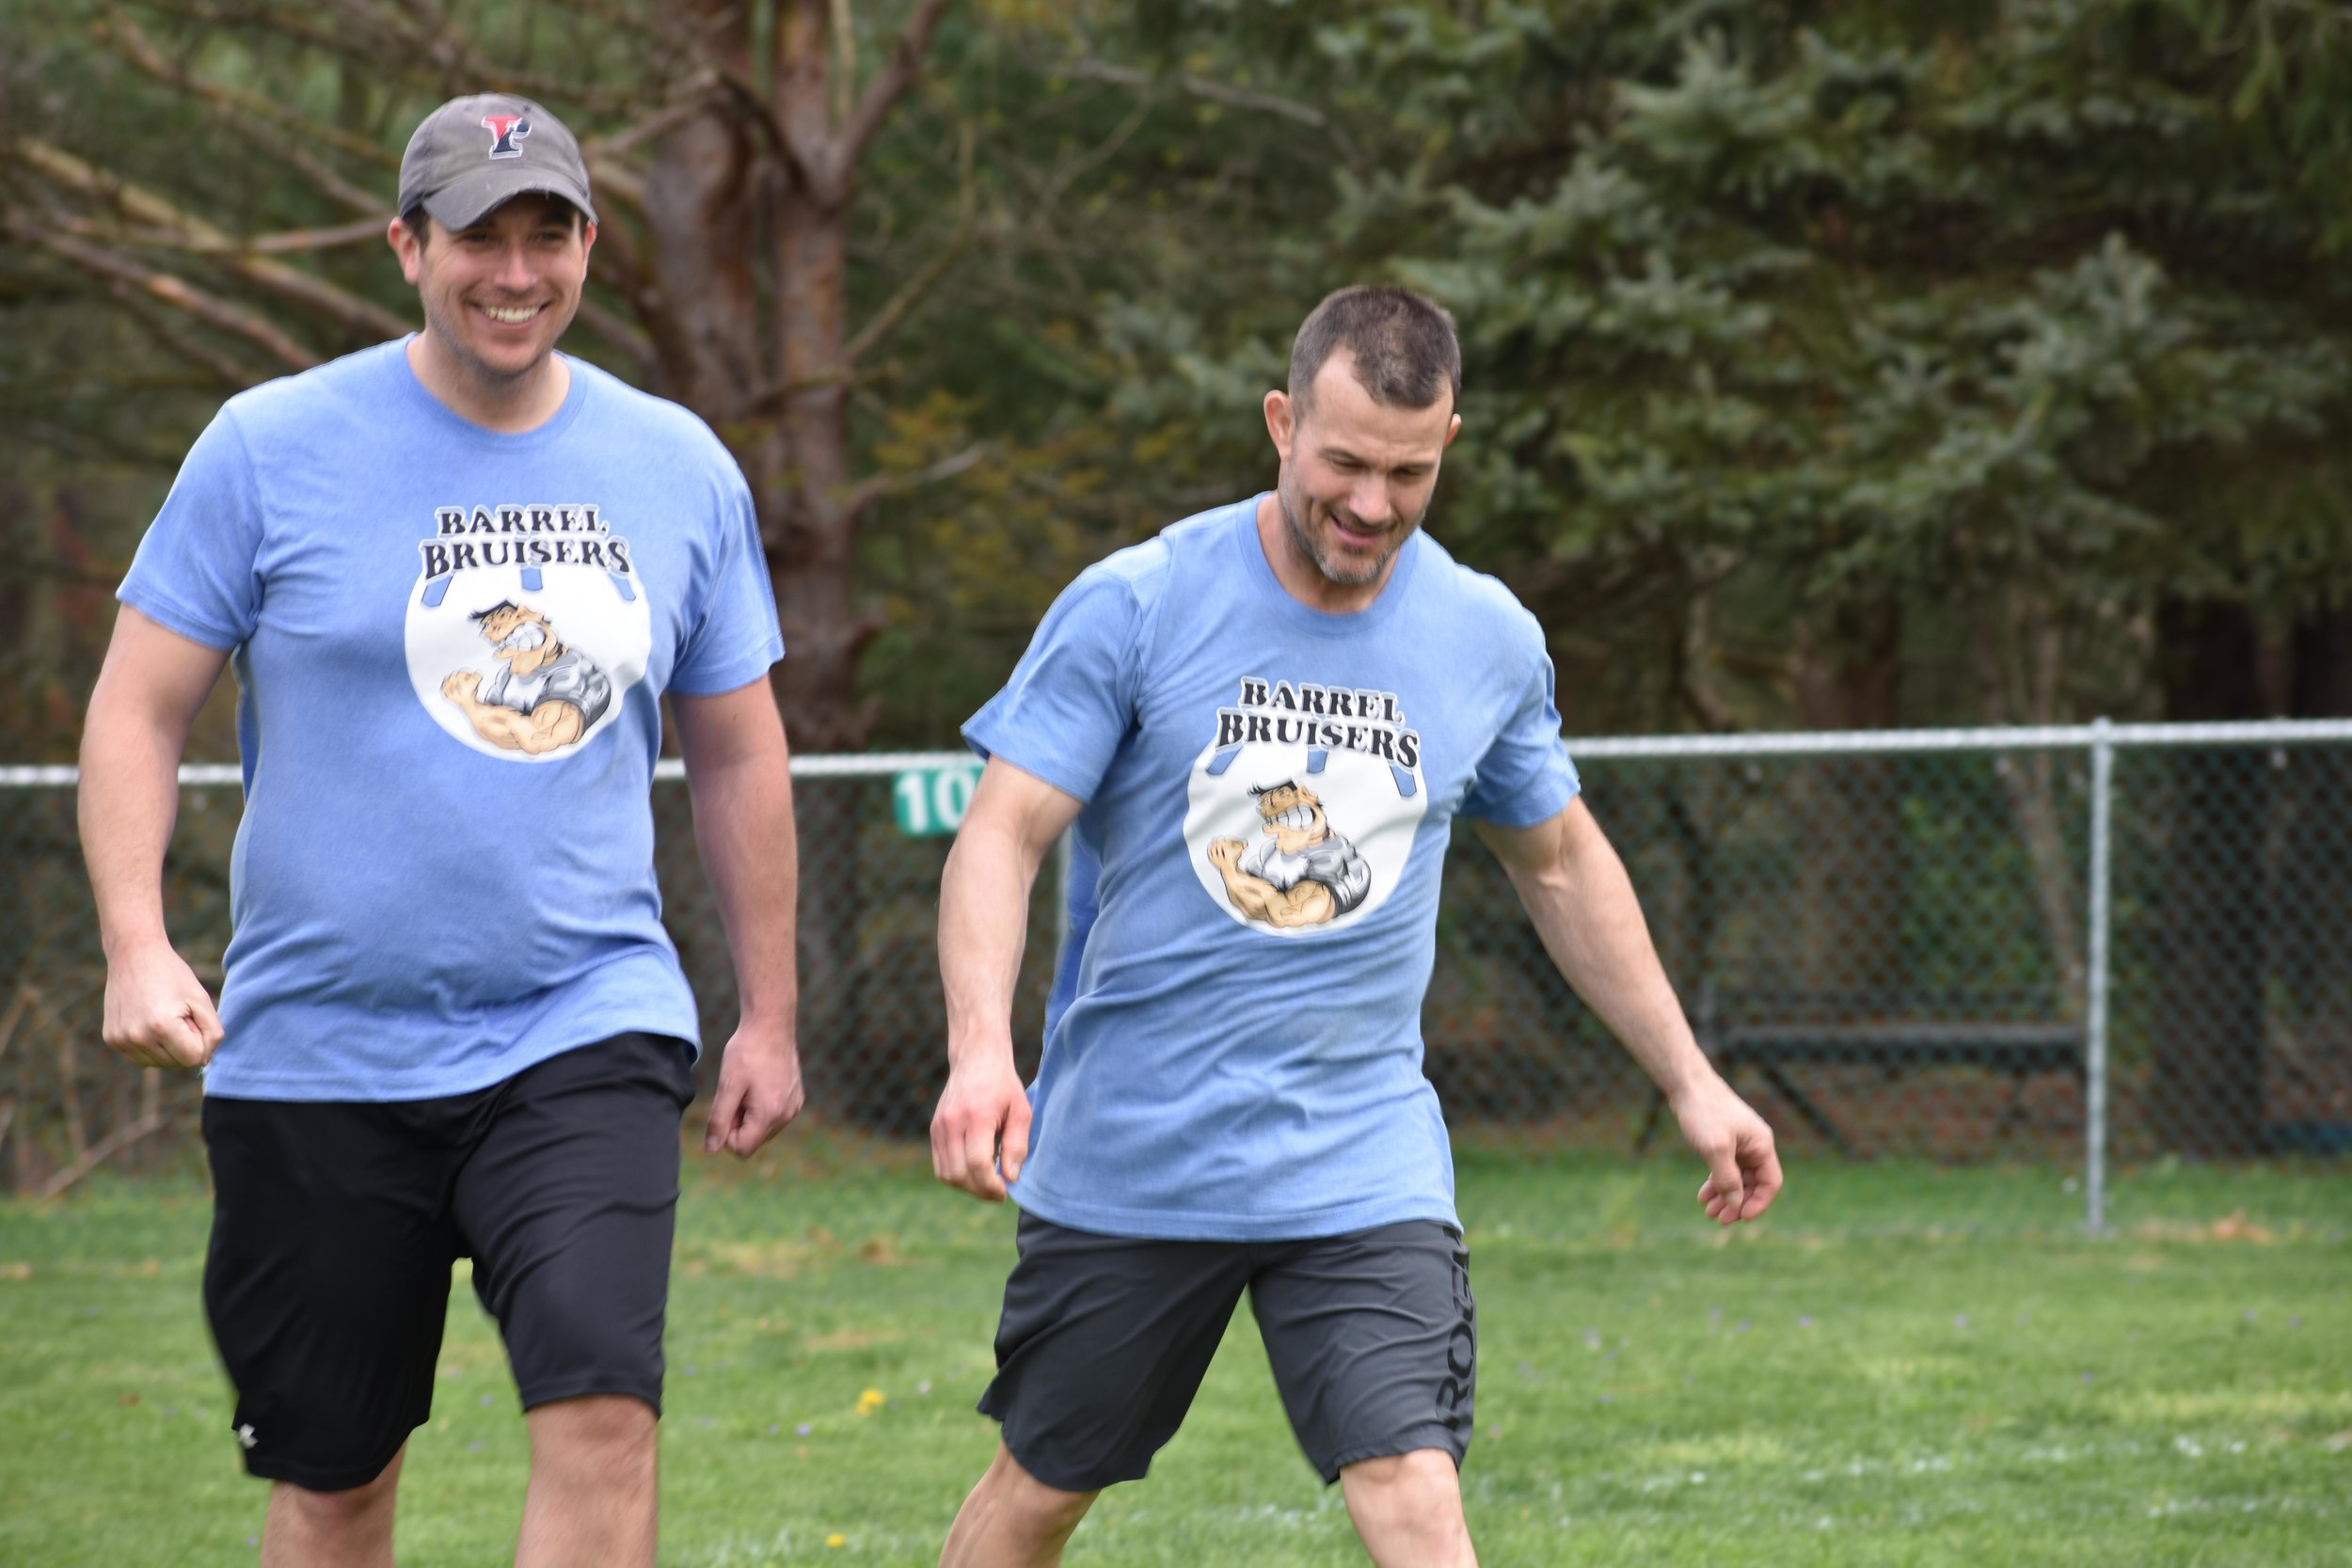 The Barrel Bruisers (L:R Chris Owen, Jerry Hill) were feeling good after downing the Longballs in their opener, 8-2. (April 20, 2019)